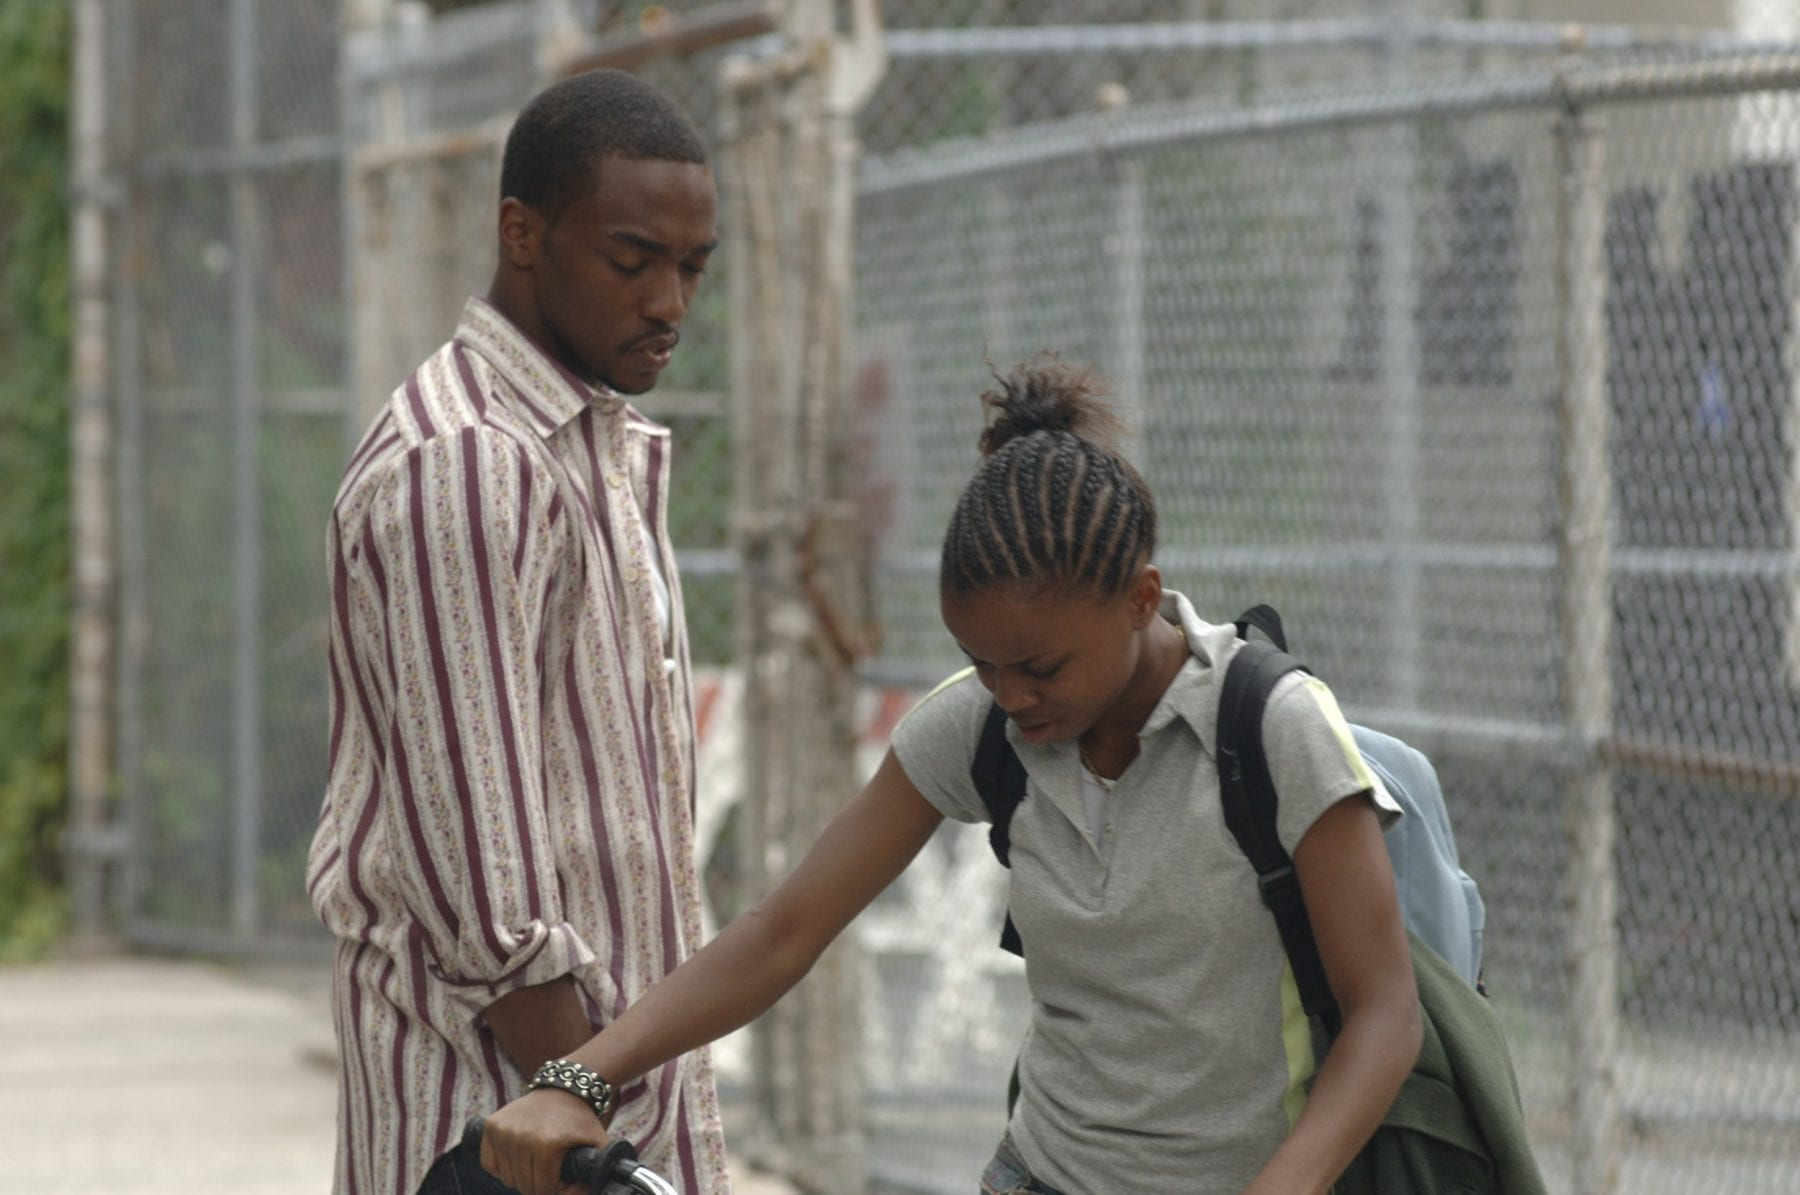 Neighborhood drug dealer Frank (Anthony Mackie) helps Drey (Shreeka Epps) get her stolen bike back.